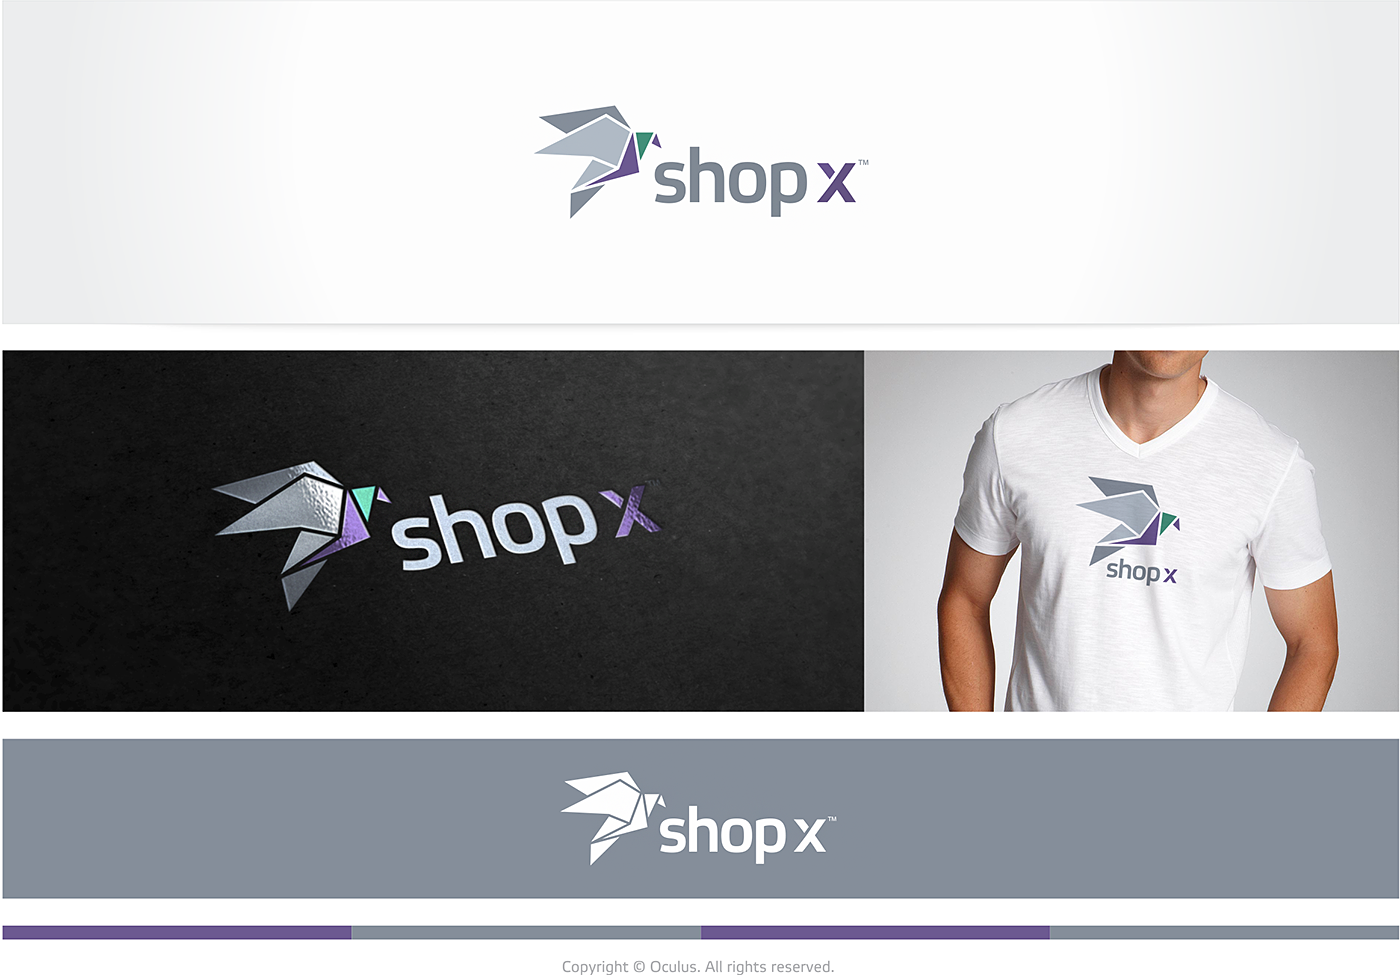 Create a vibrant and modern logo for our Google Glass app: Shop X!